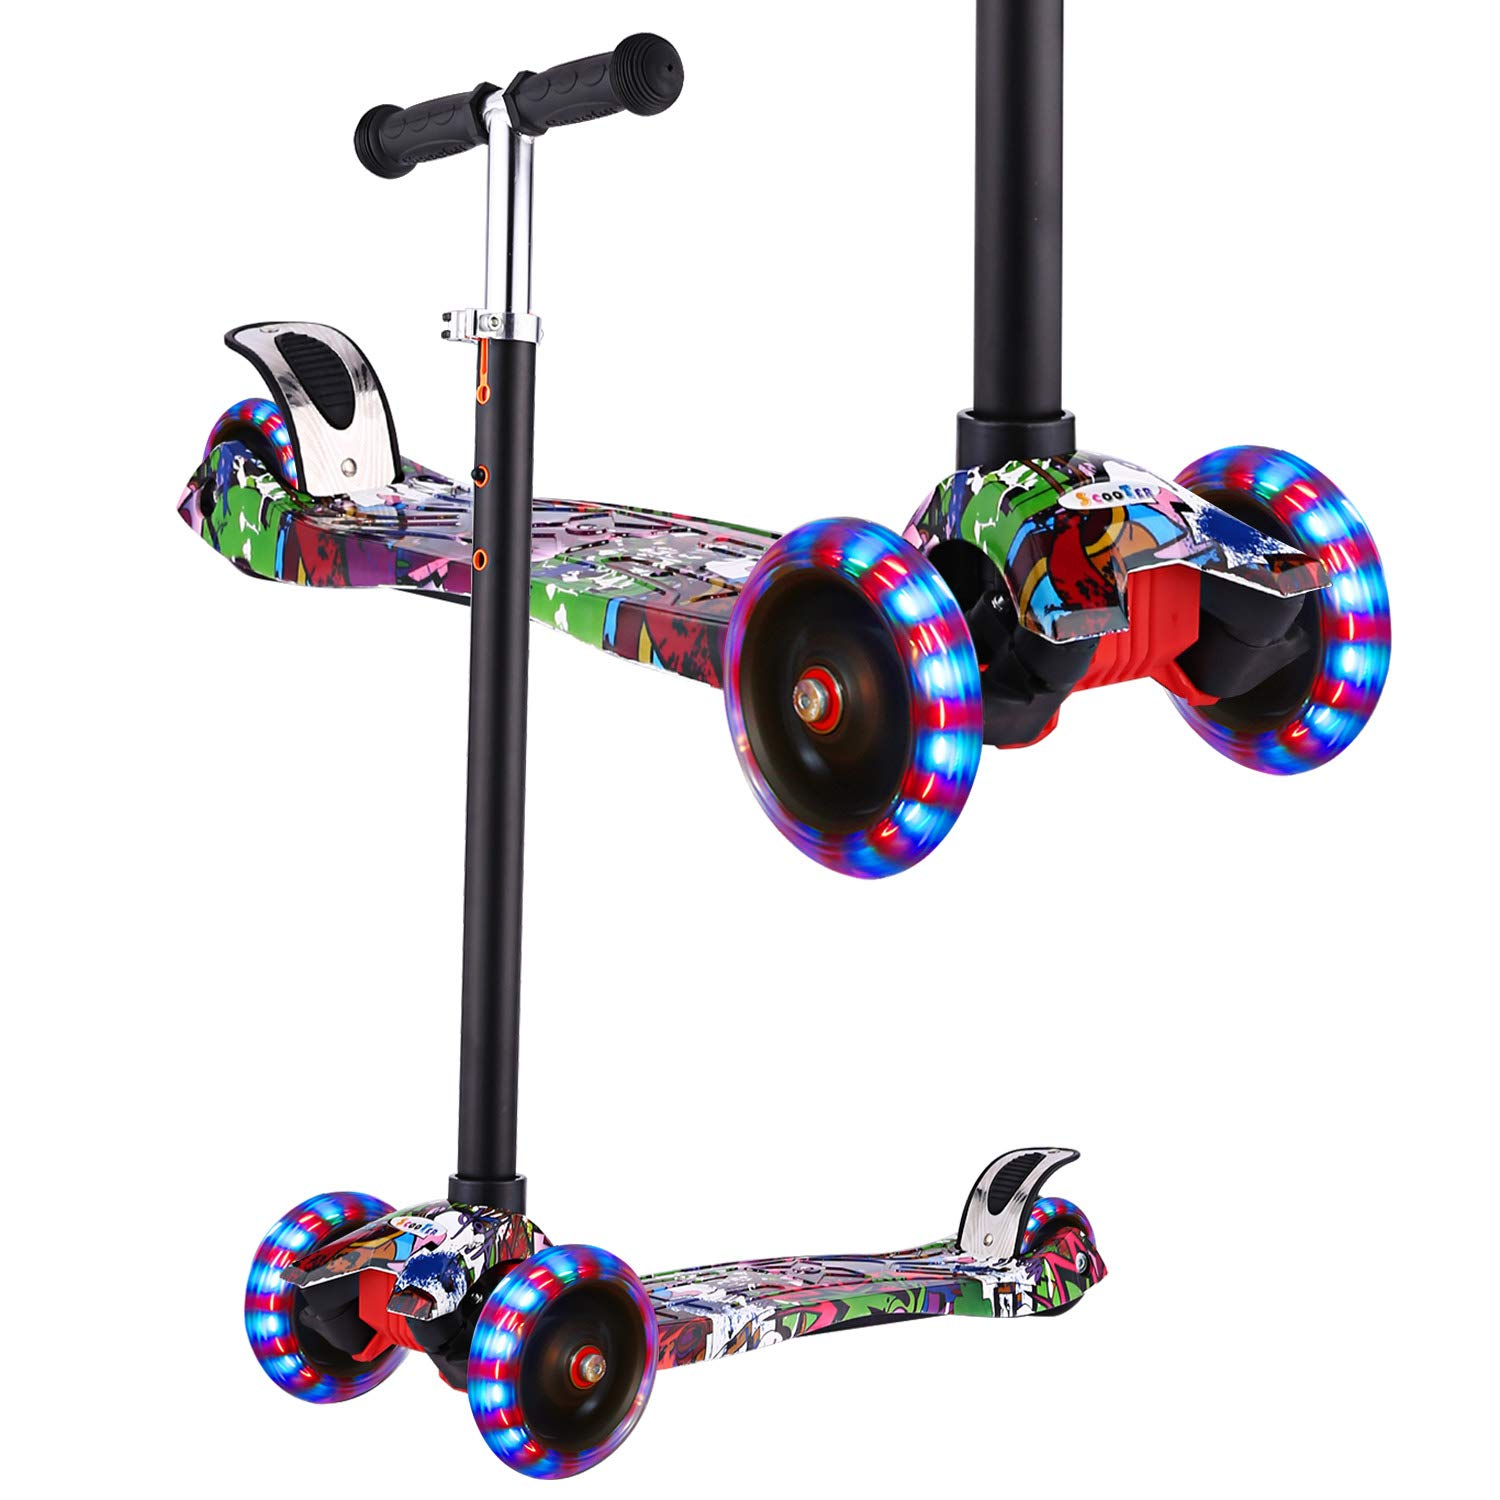 Hikole Kick Scooter for Kids, 3 Wheel Scooter for Toddlers Girls & Boys, 3 Adjustable Height, Lean to Steer with PU Flashing Wheels for Children from ...